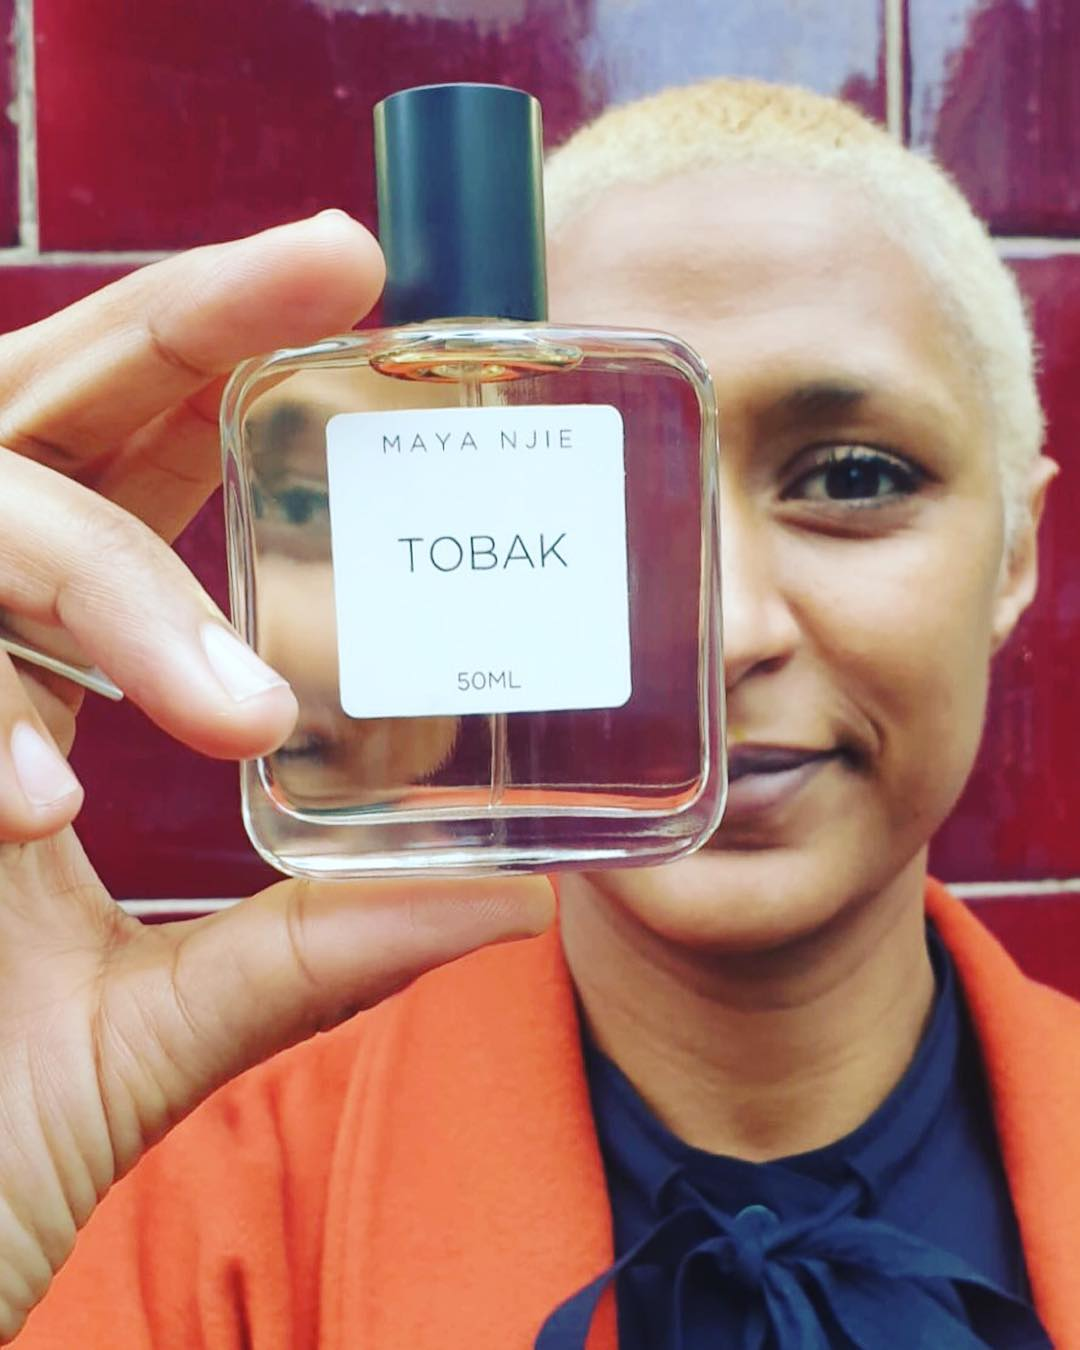 The niche perfumer creating scents from her Swedish-Gambian upbringing